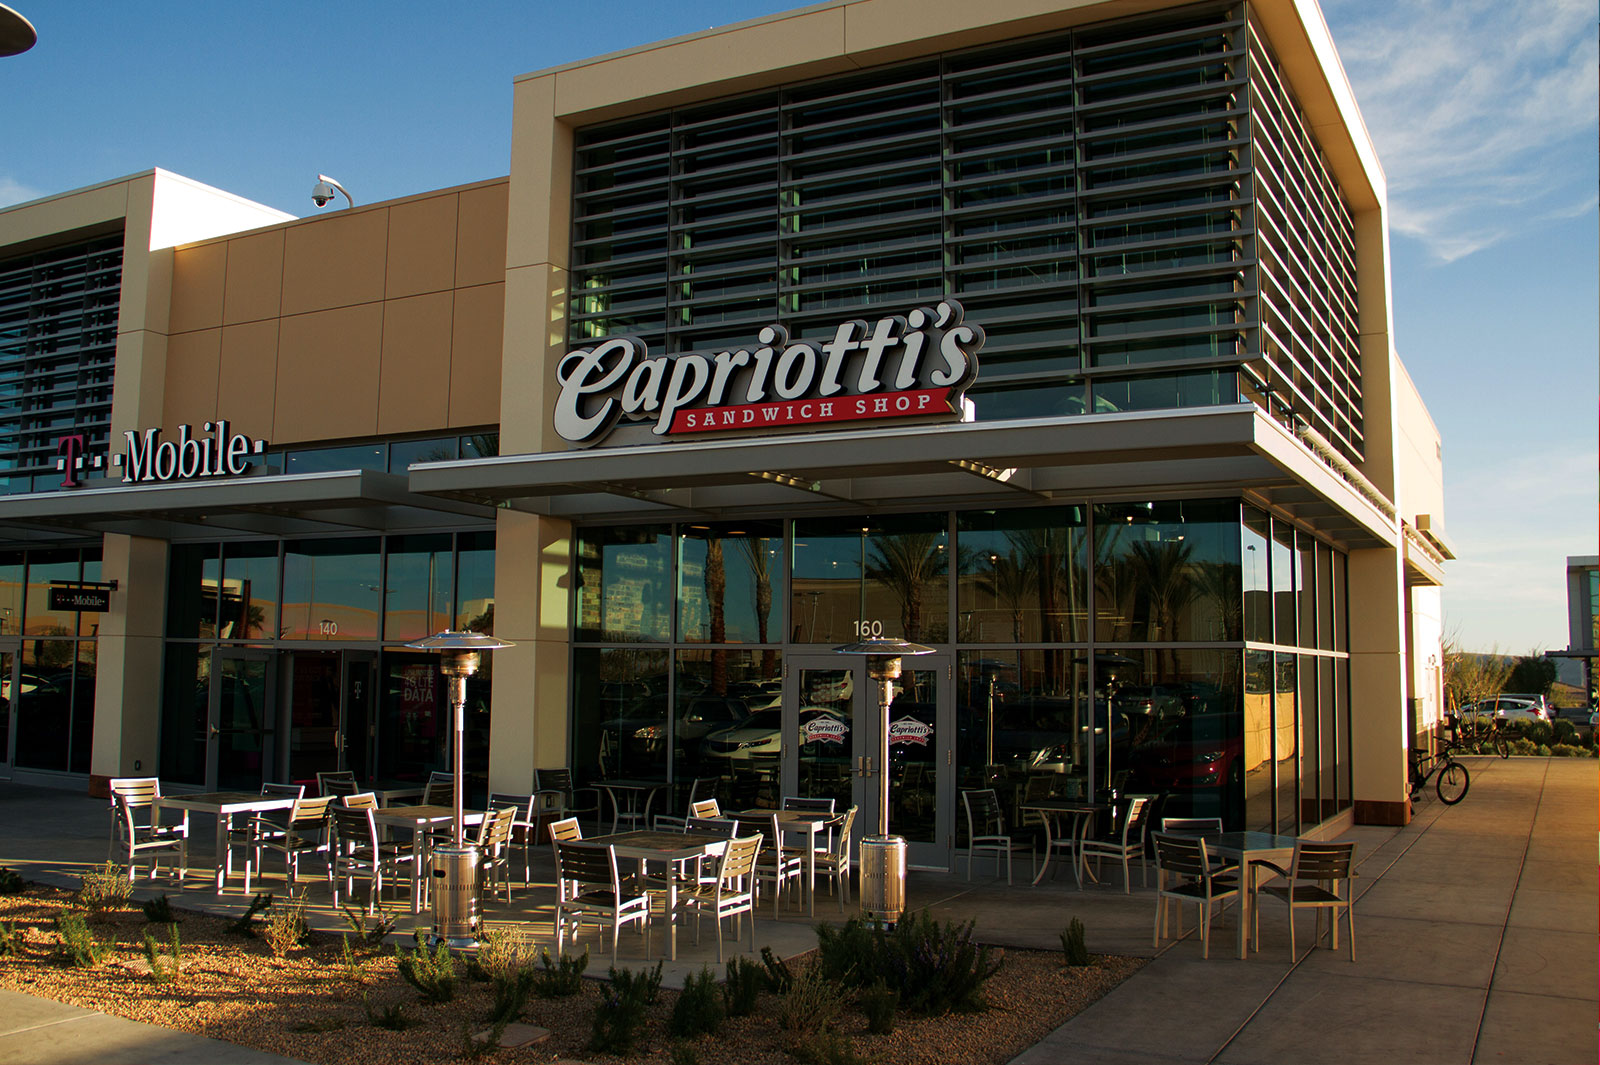 Capriotti's: The Road to 500 Stores